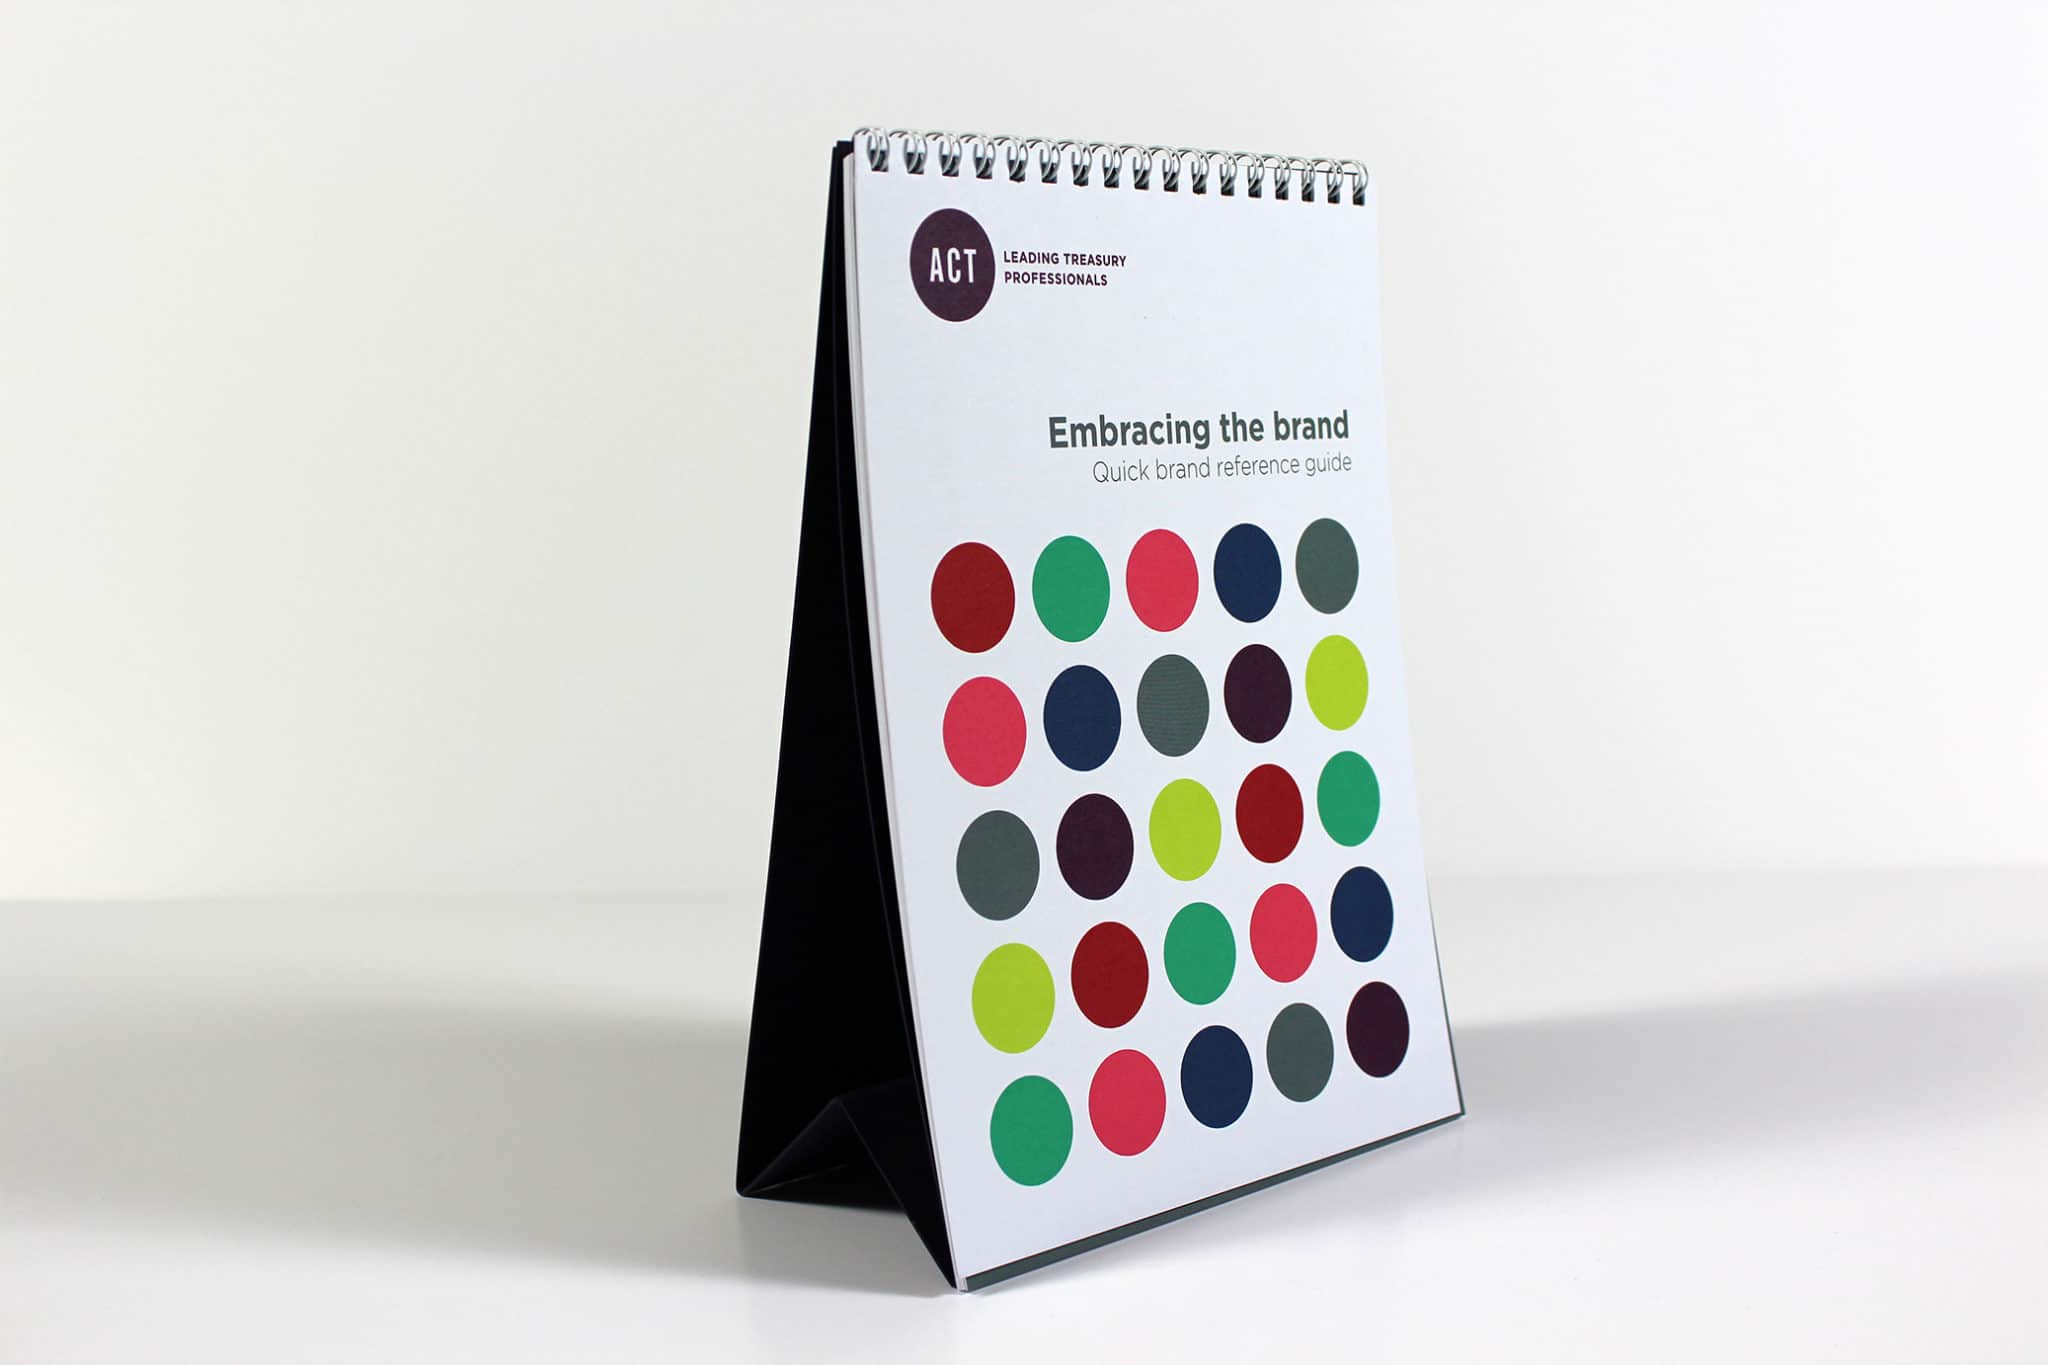 Printed Wiro-bound brand guidelines for ACT - tent card calendar style